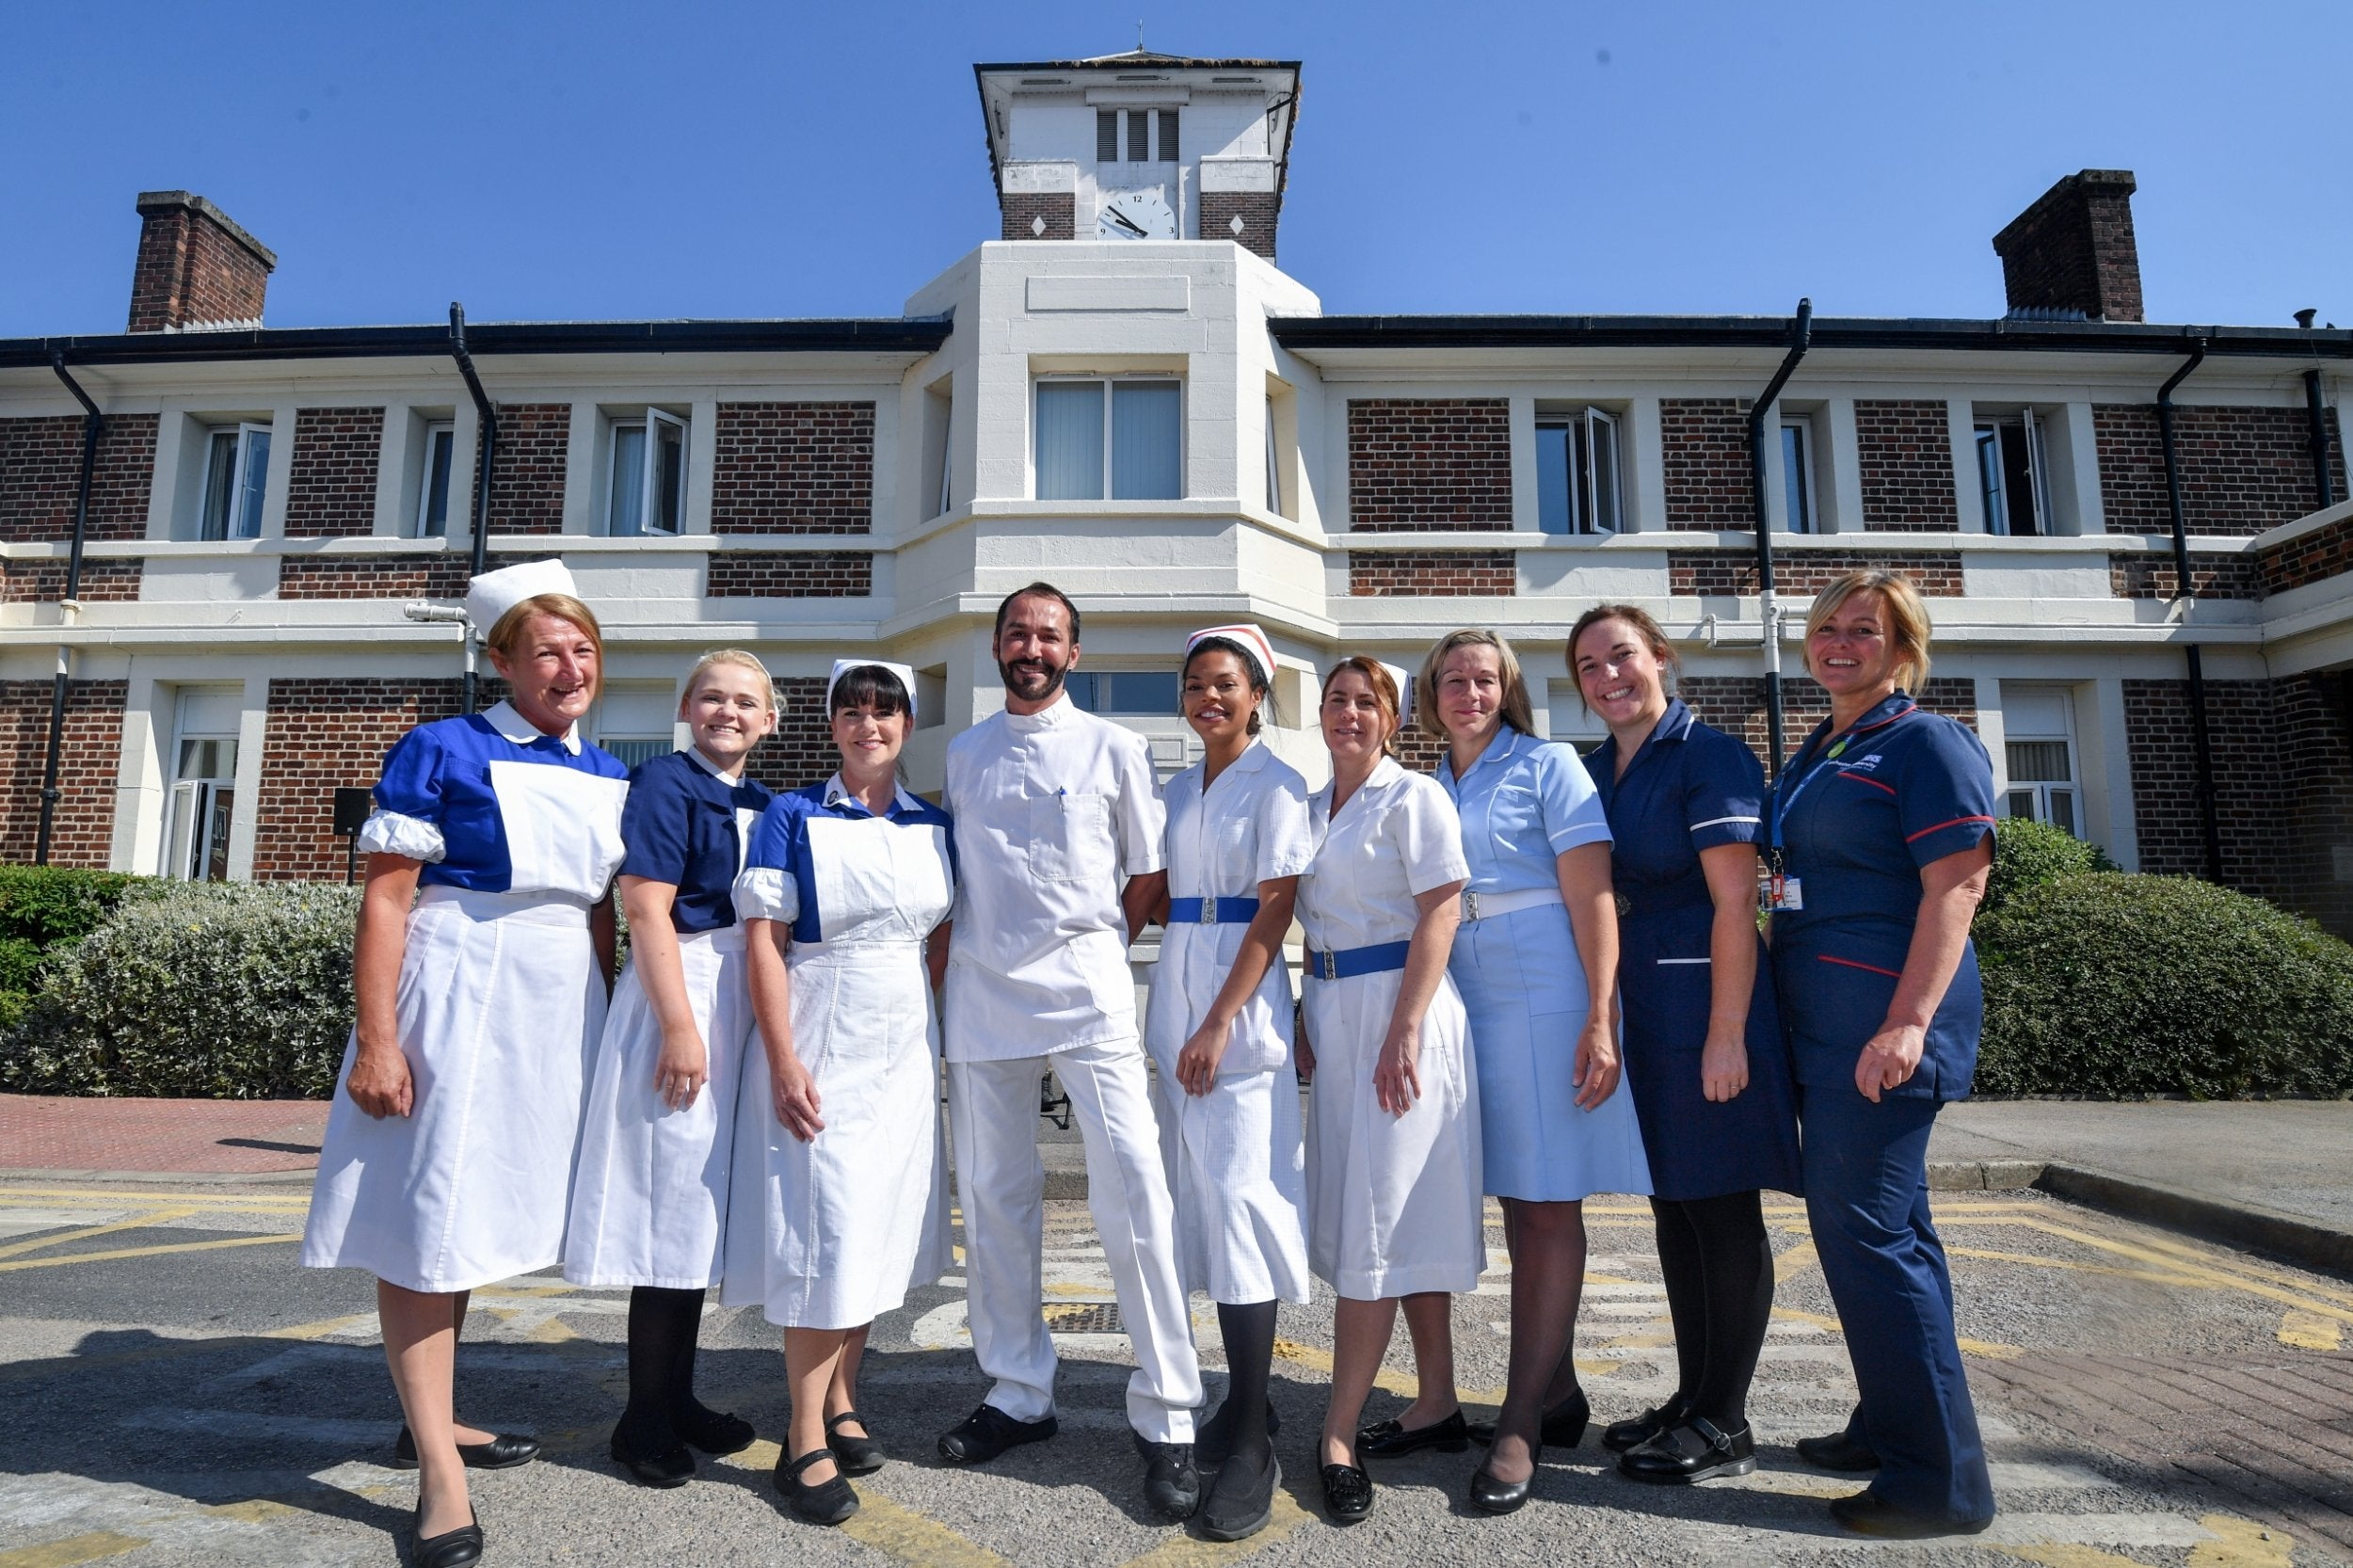 NHS at 70: Nurses pose in uniforms from seven decades to ...